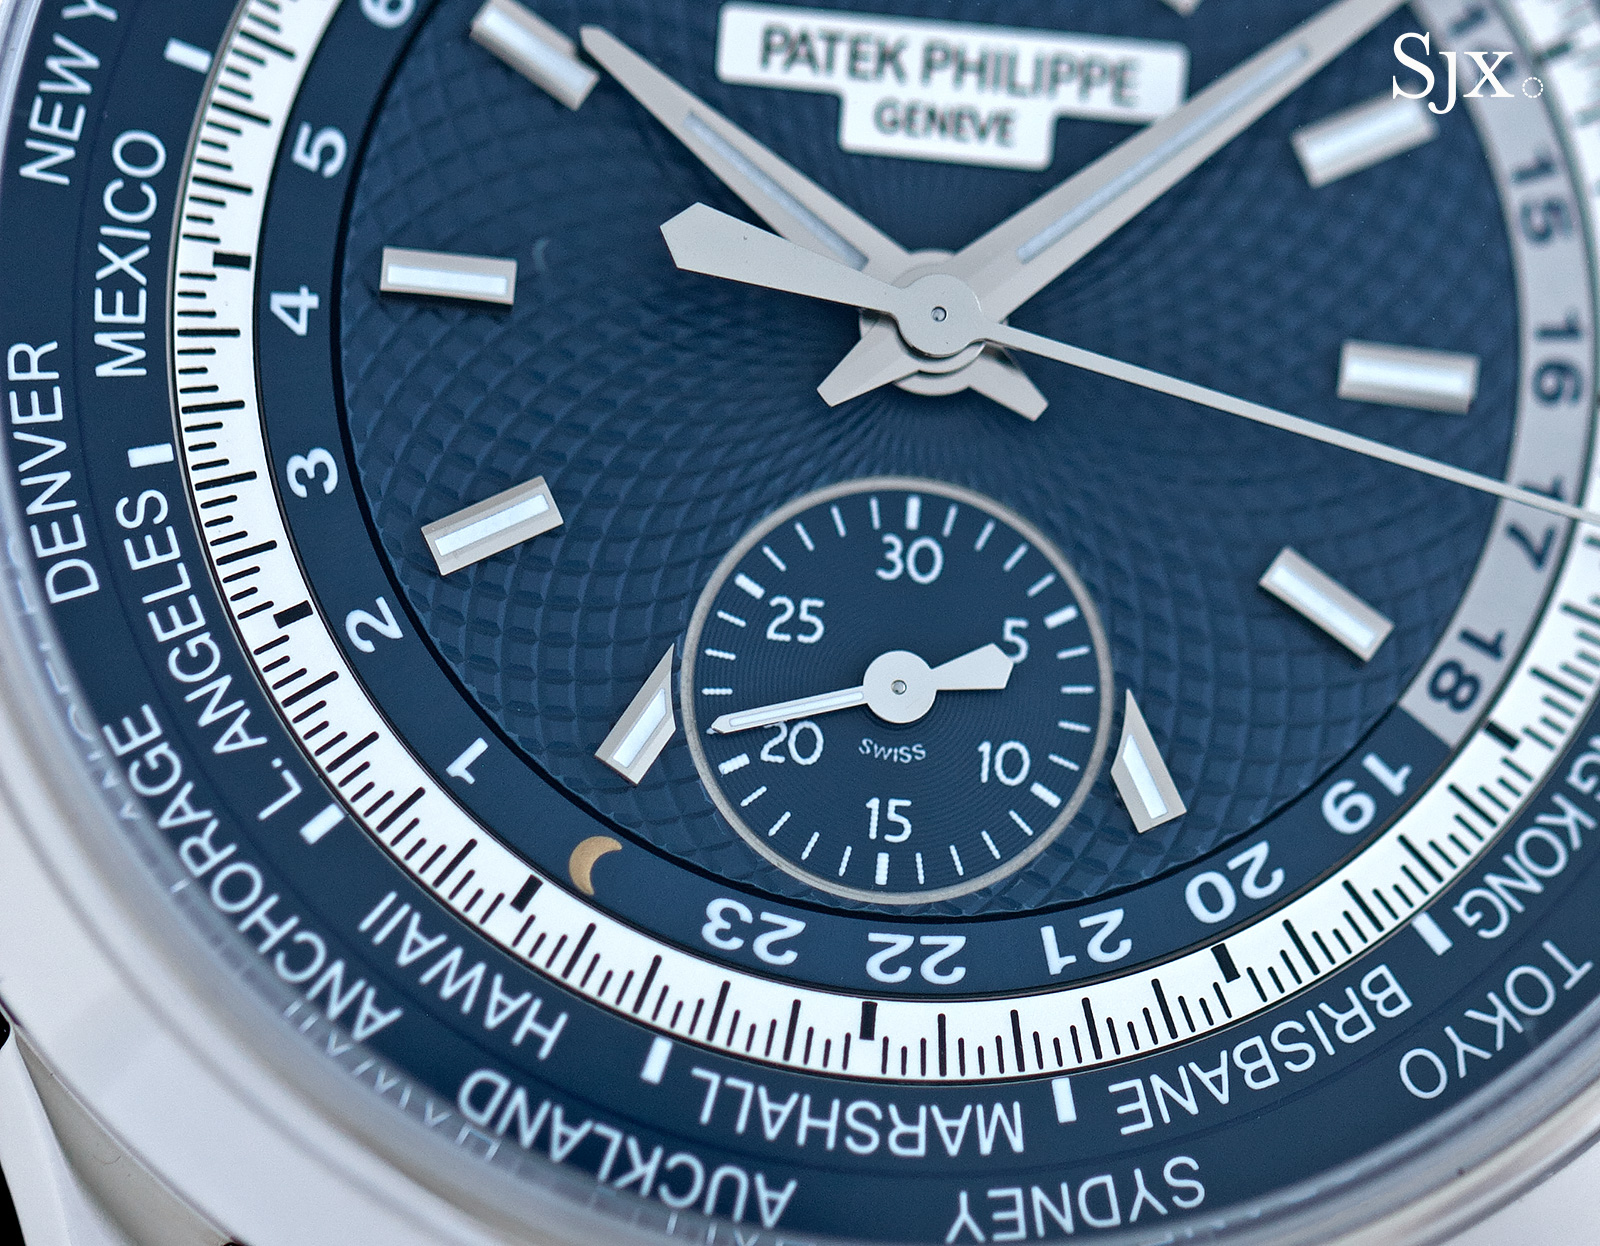 Patek Philippe World Time Chronograph Ref. 5930G 4